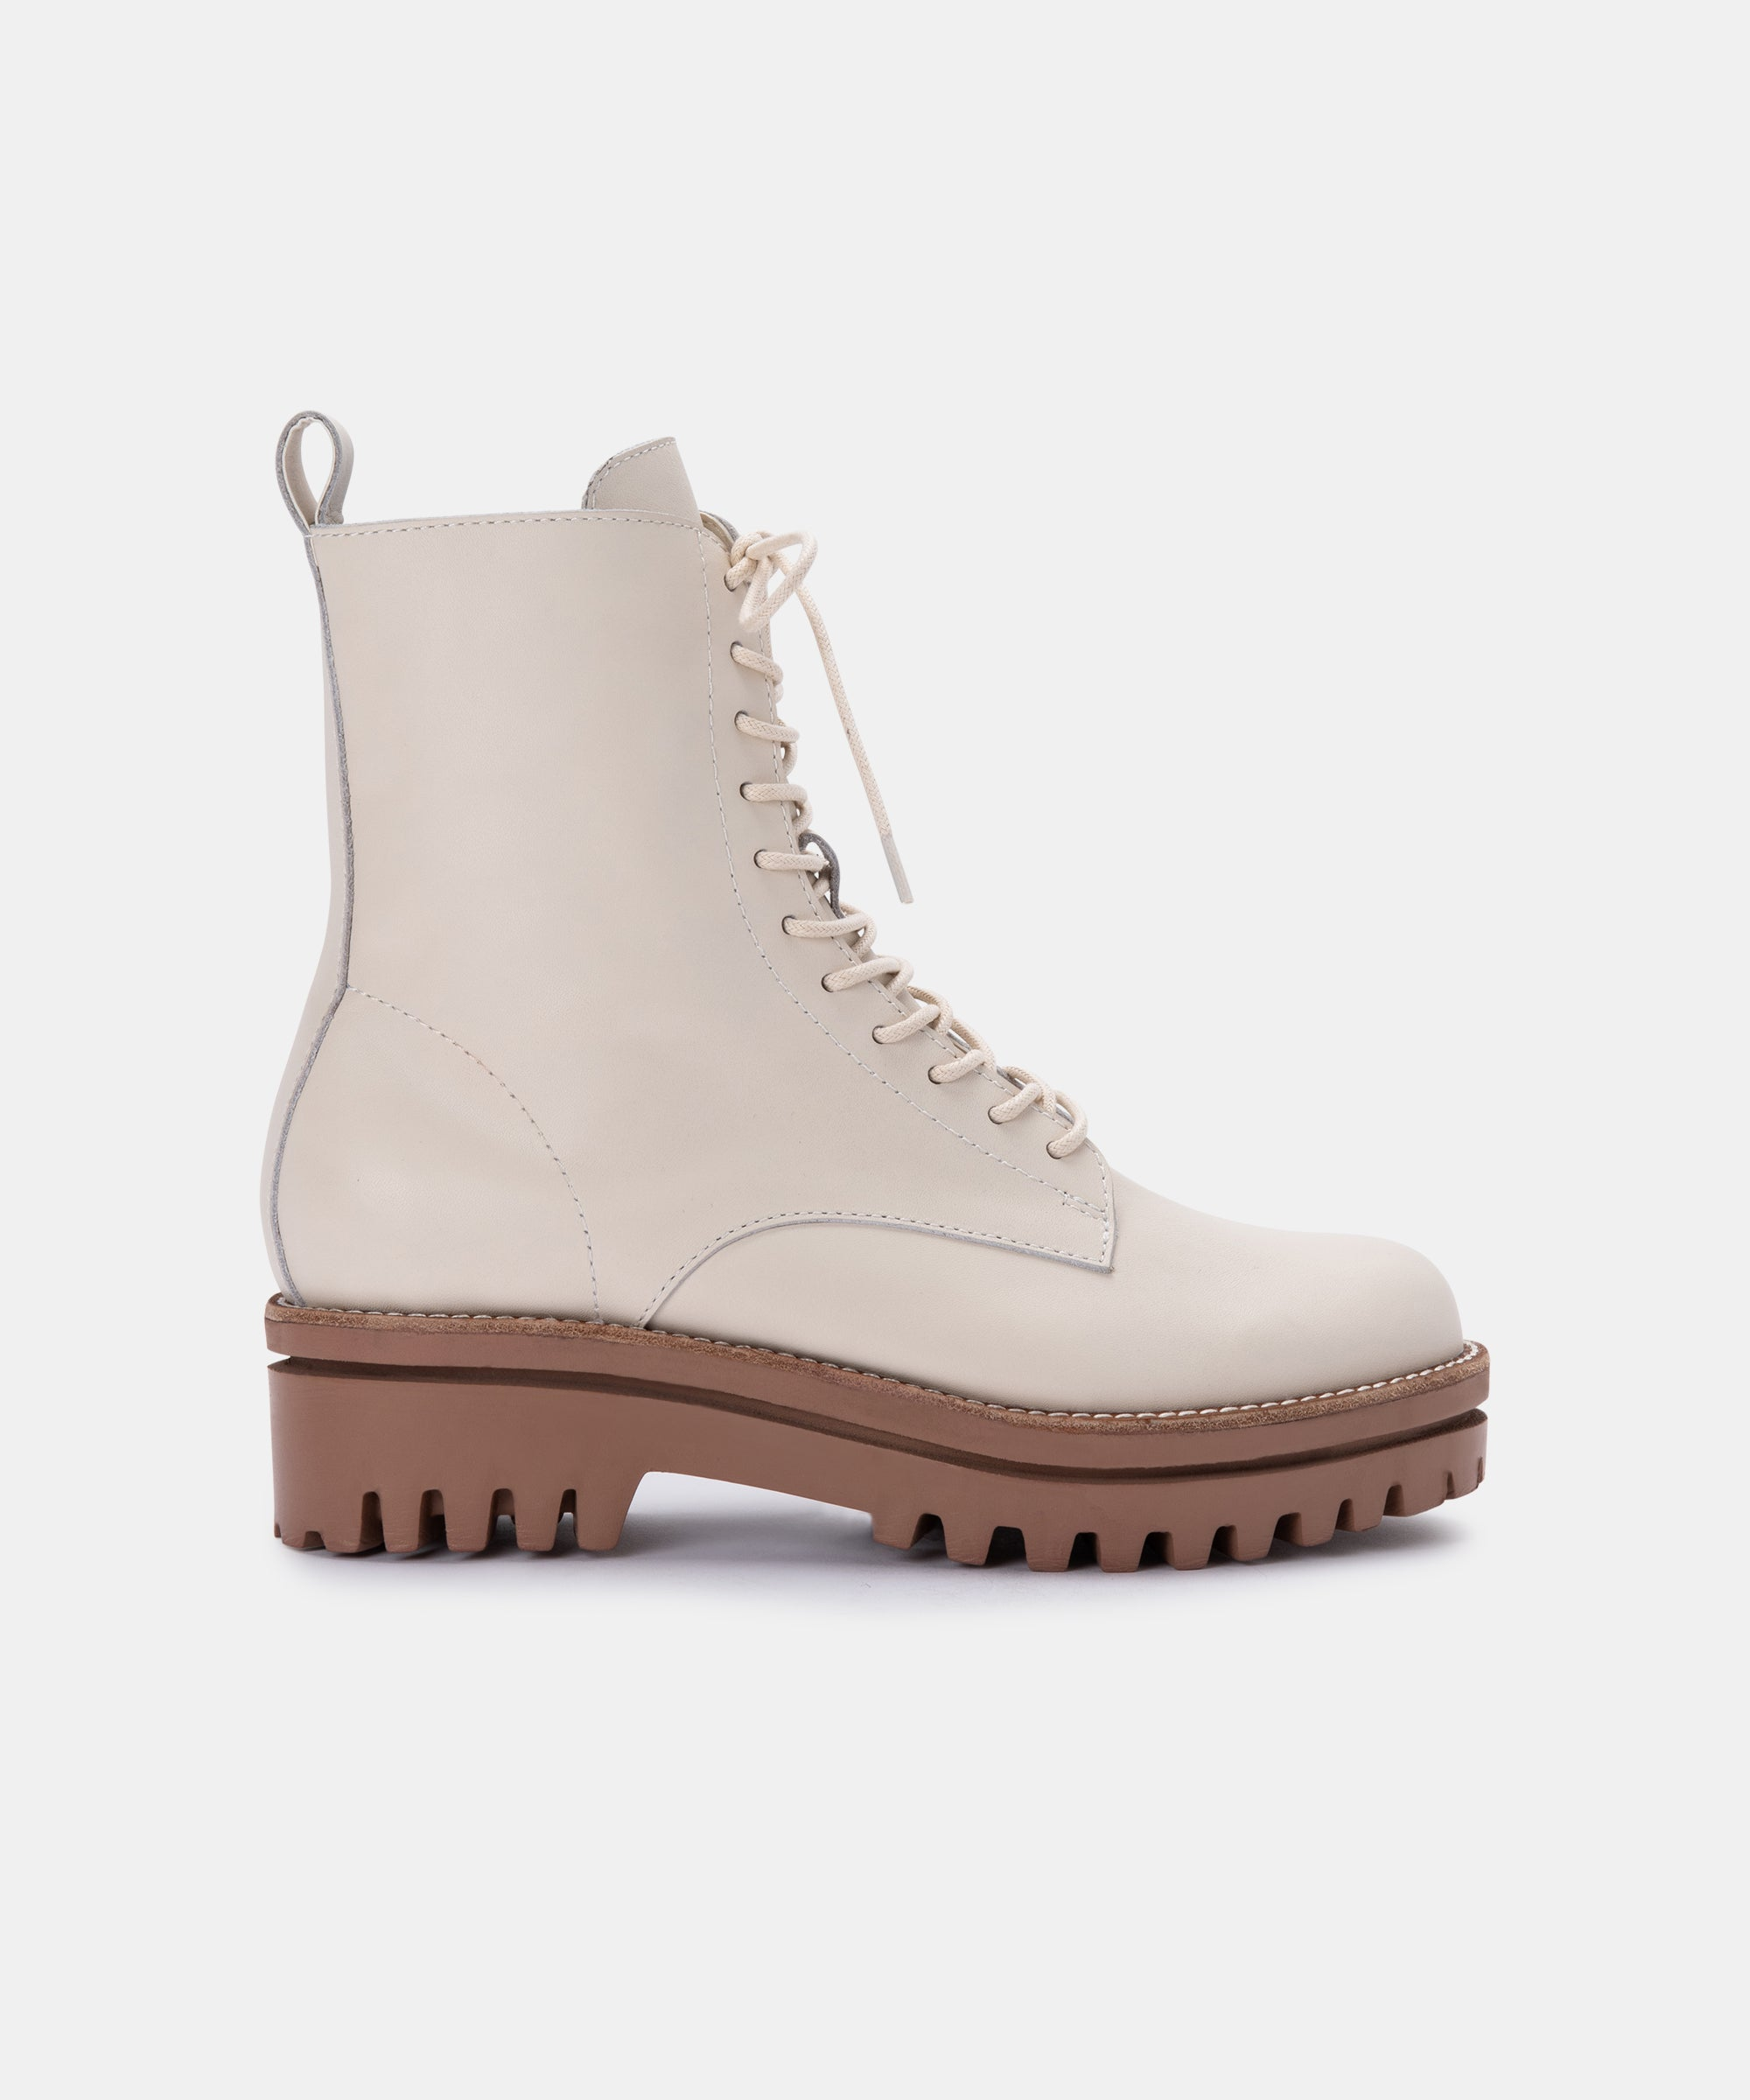 PRYM BOOTS IN IVORY LEATHER